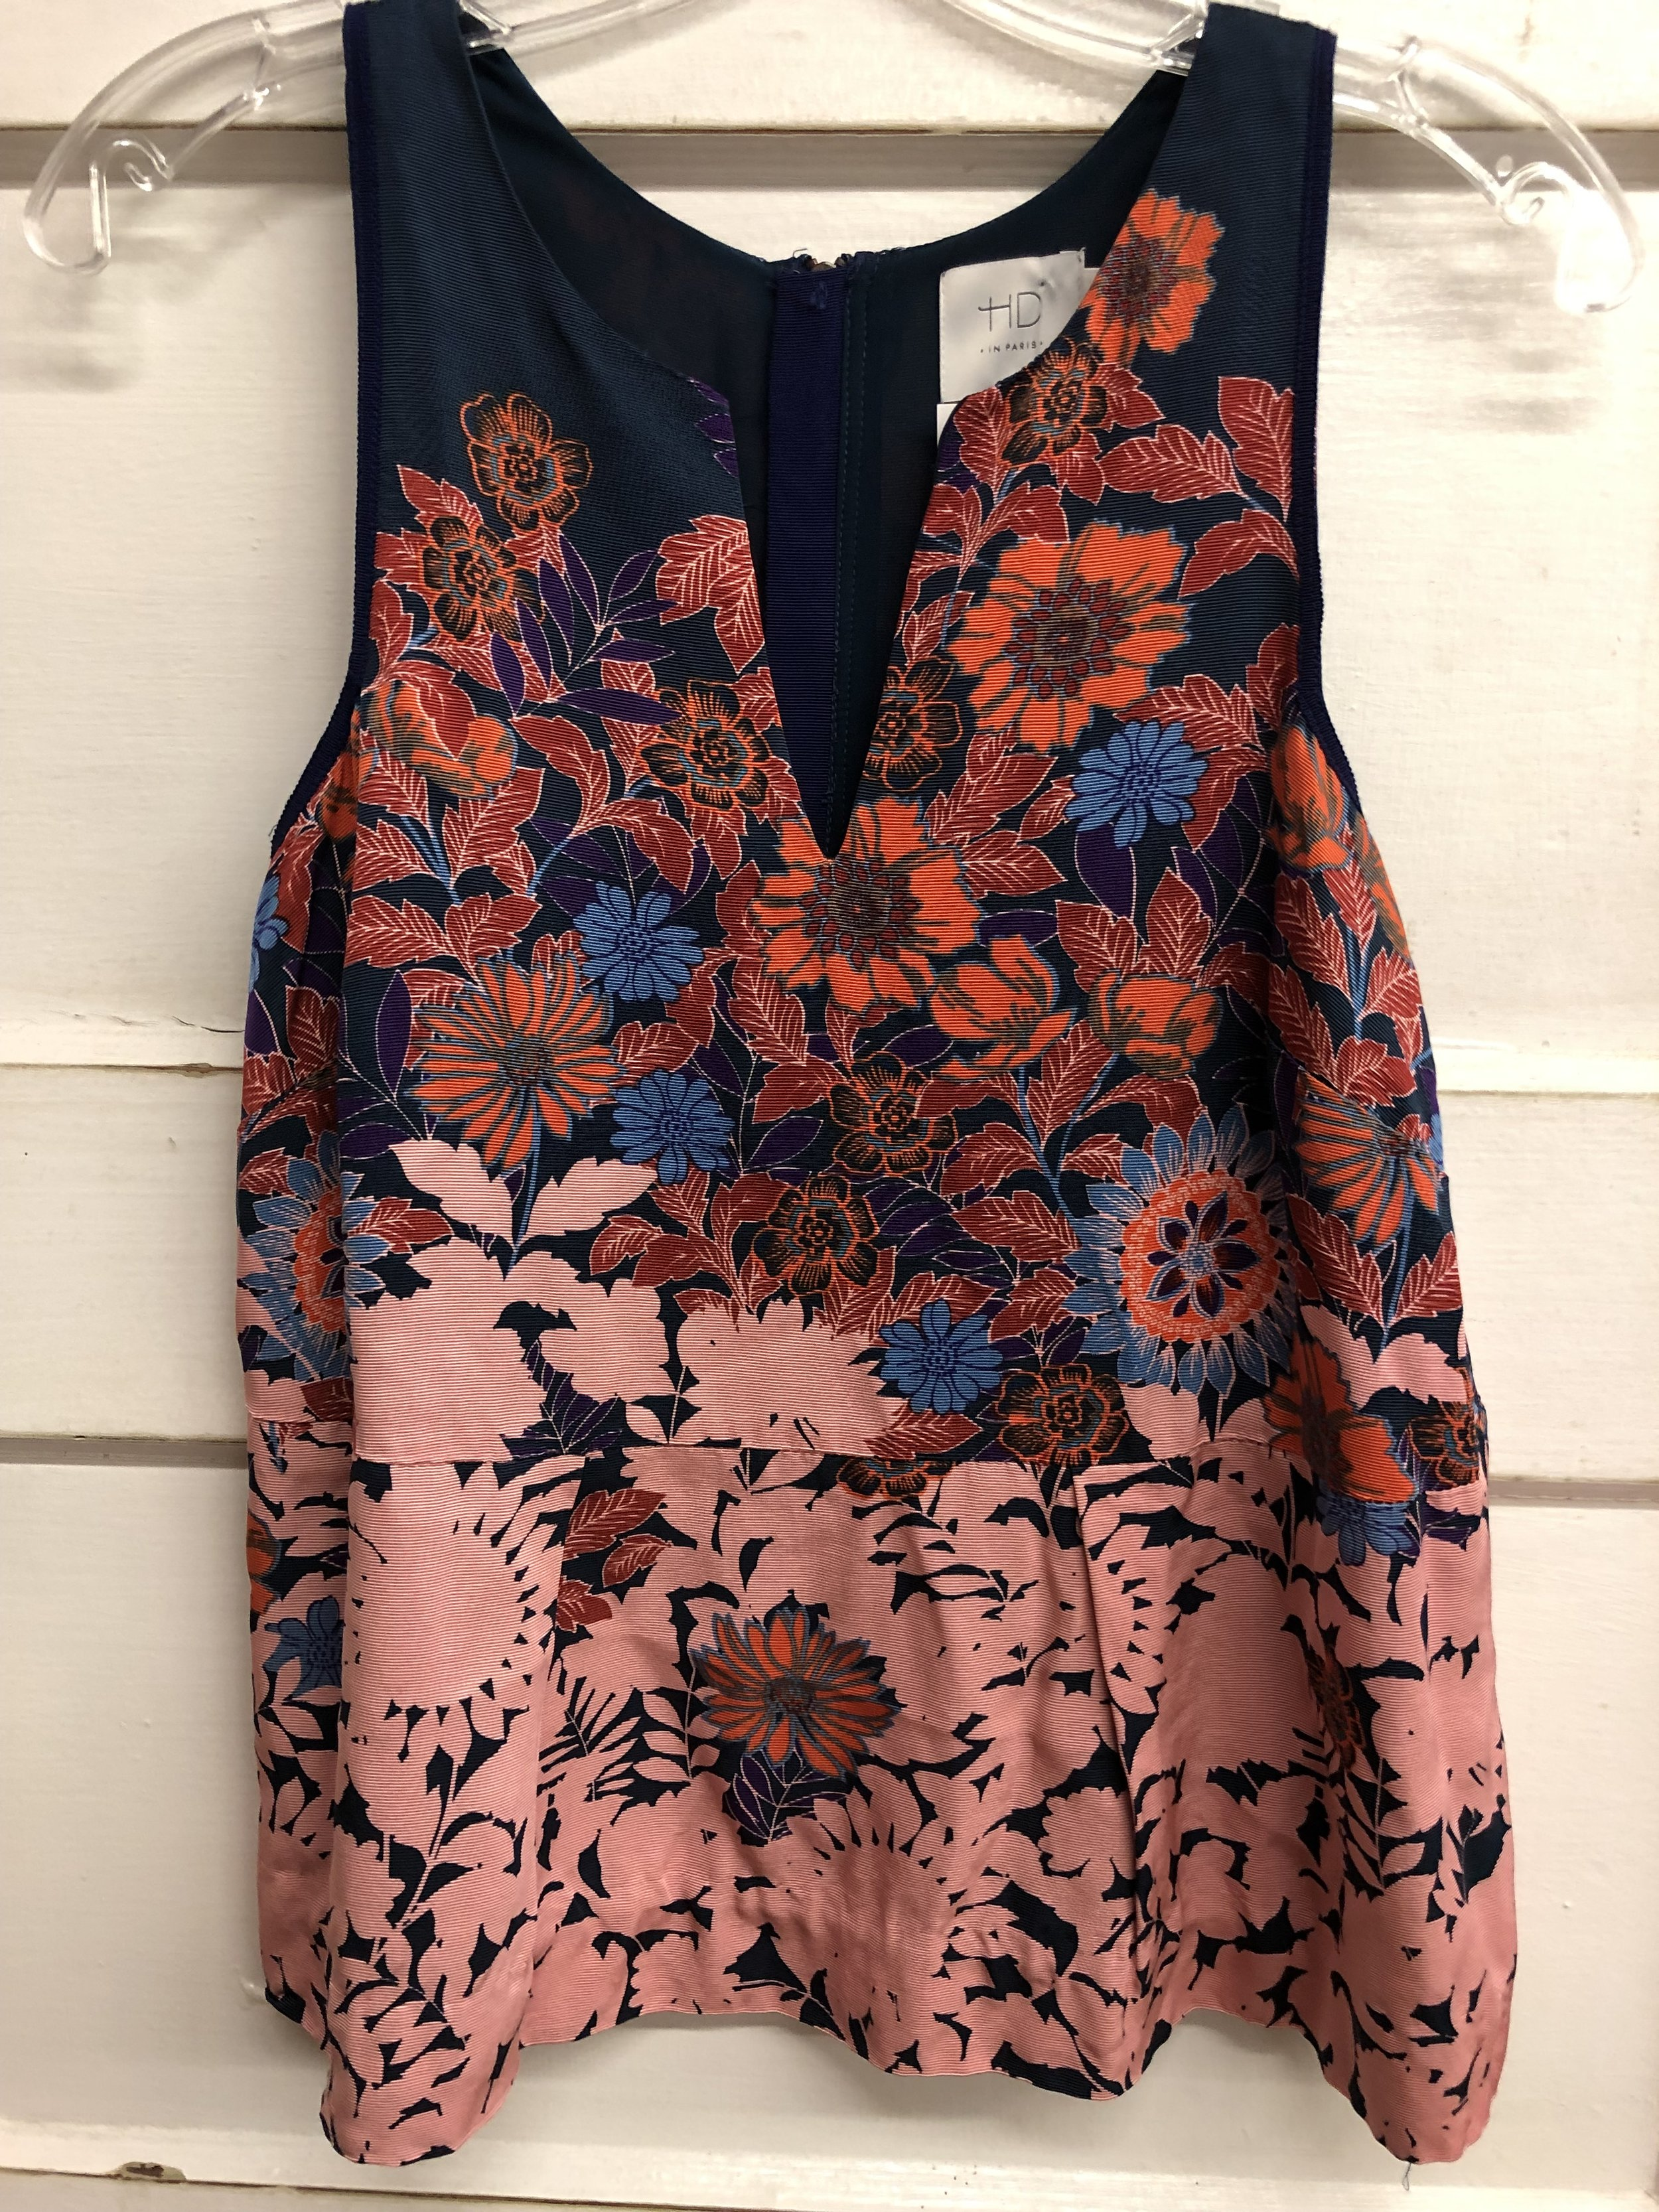 HD in Paris Floral - Small- $20.99